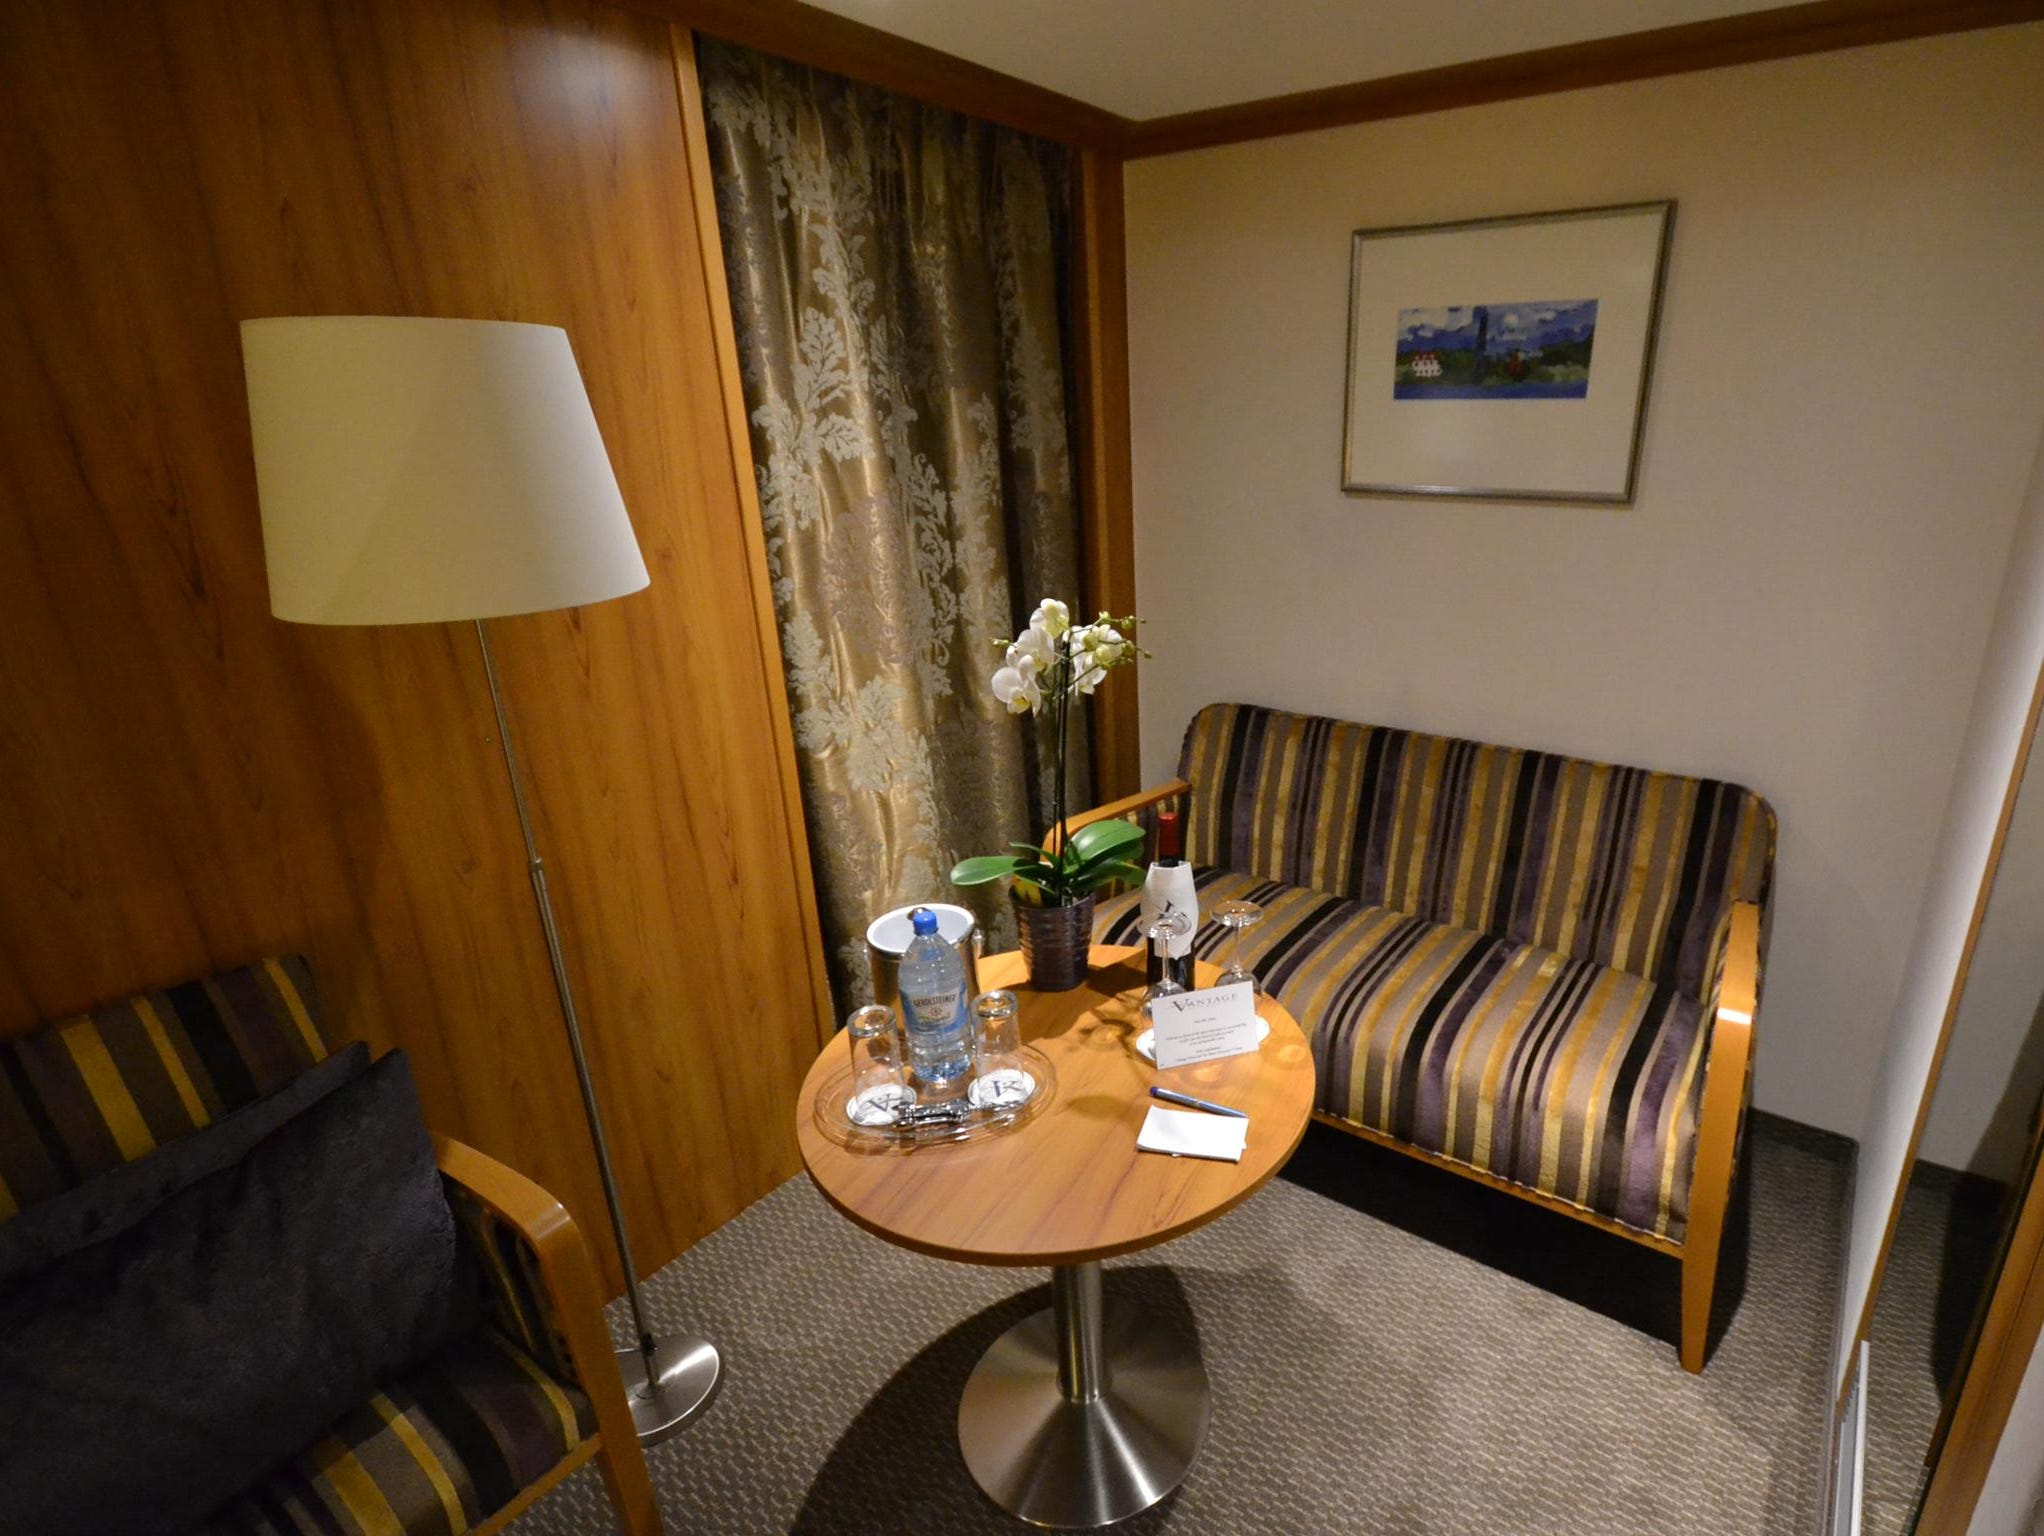 The sitting area in a Deluxe Suite. Deluxe Suites are more than 50% larger than standard cabins on the ship.